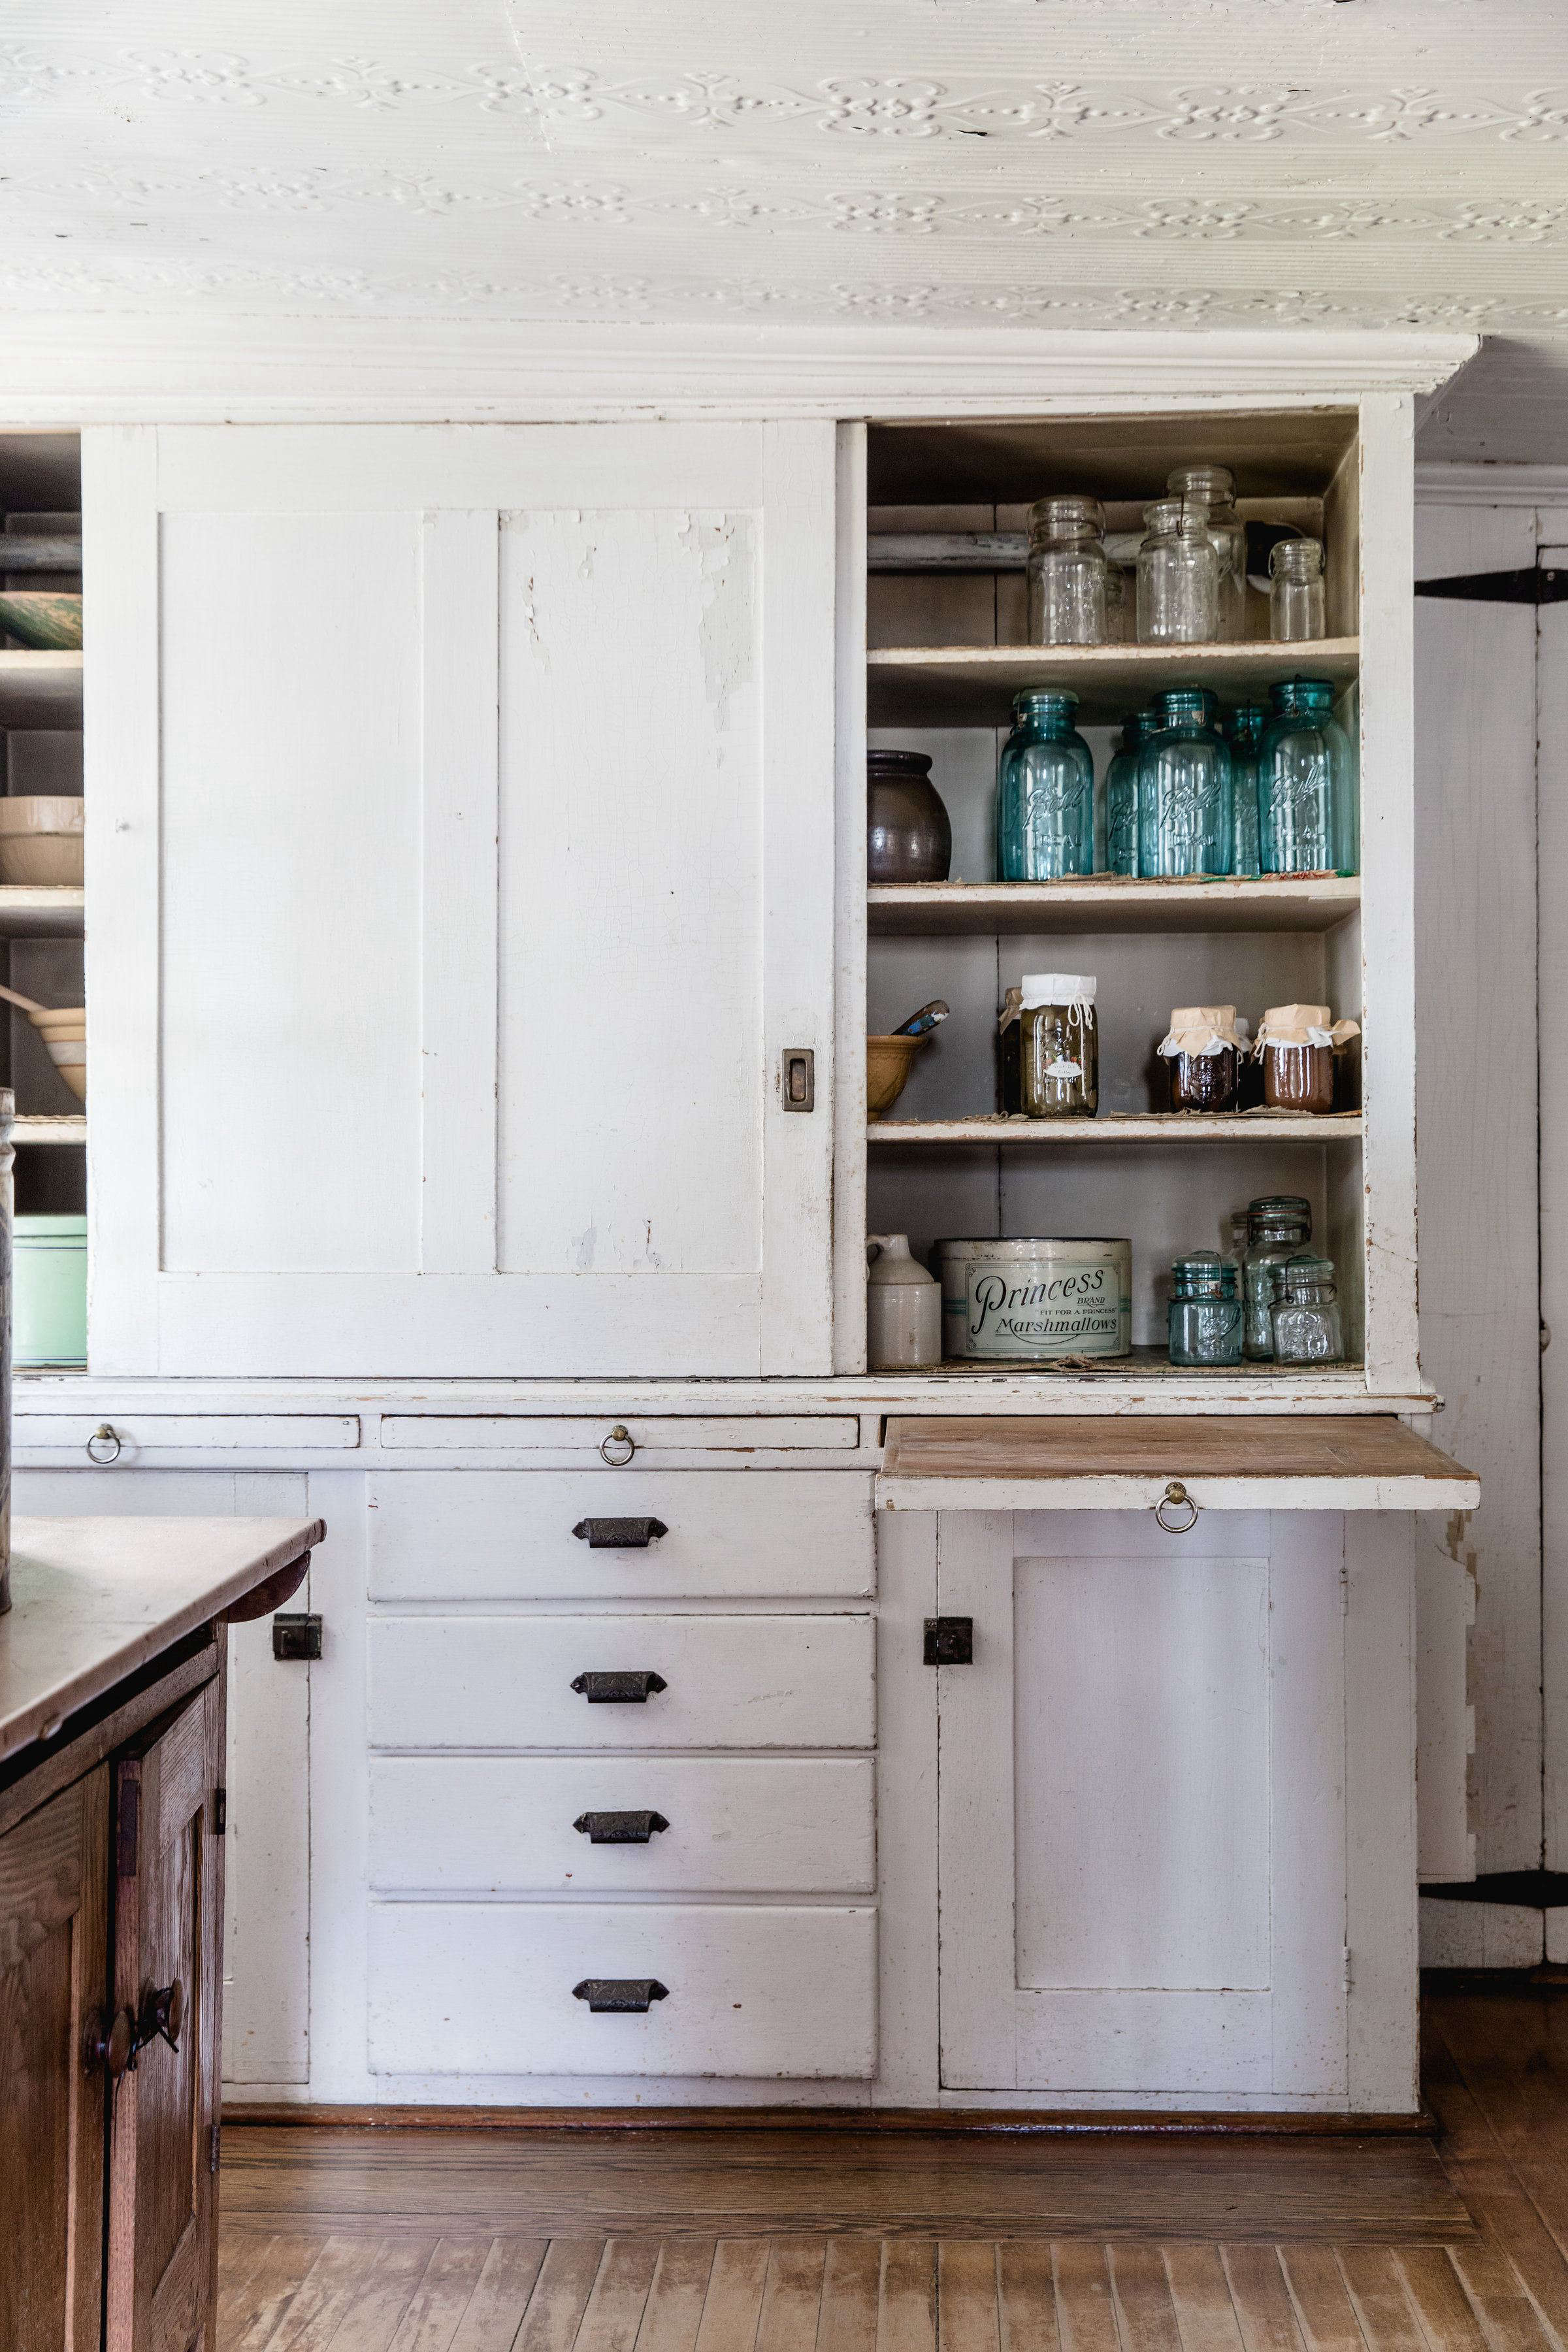 Kitchen Cabinets at Canterbury Shaker Village, Photo by Erin Little